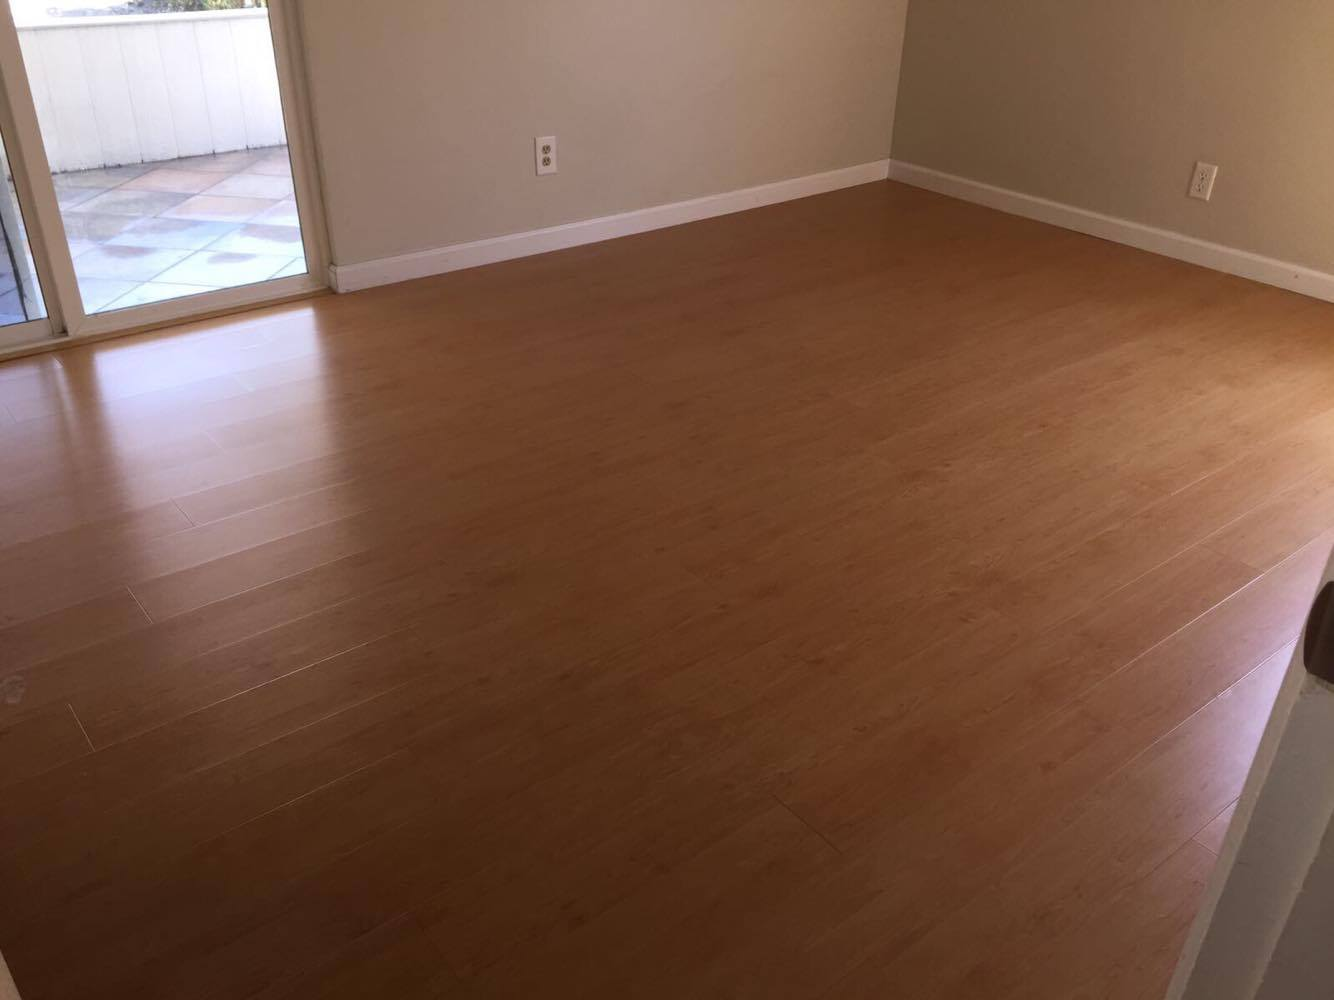 los-angeles-moveout-movein-cleans.jpg